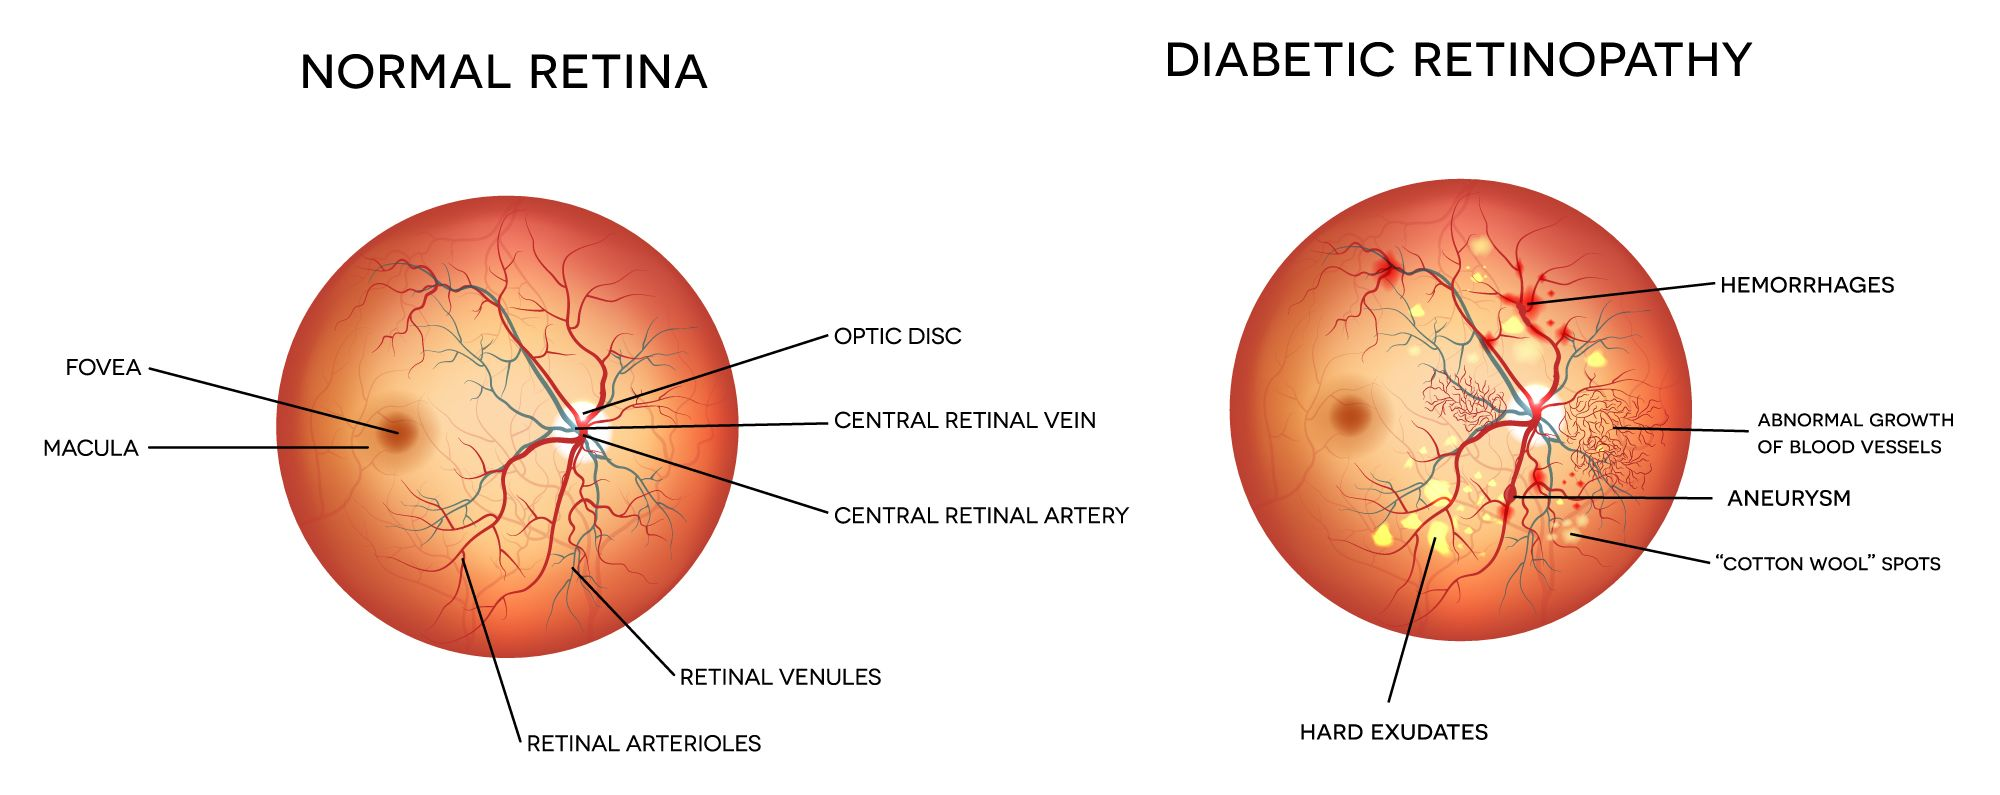 Normal retina vs. one with diabetic retinopathy